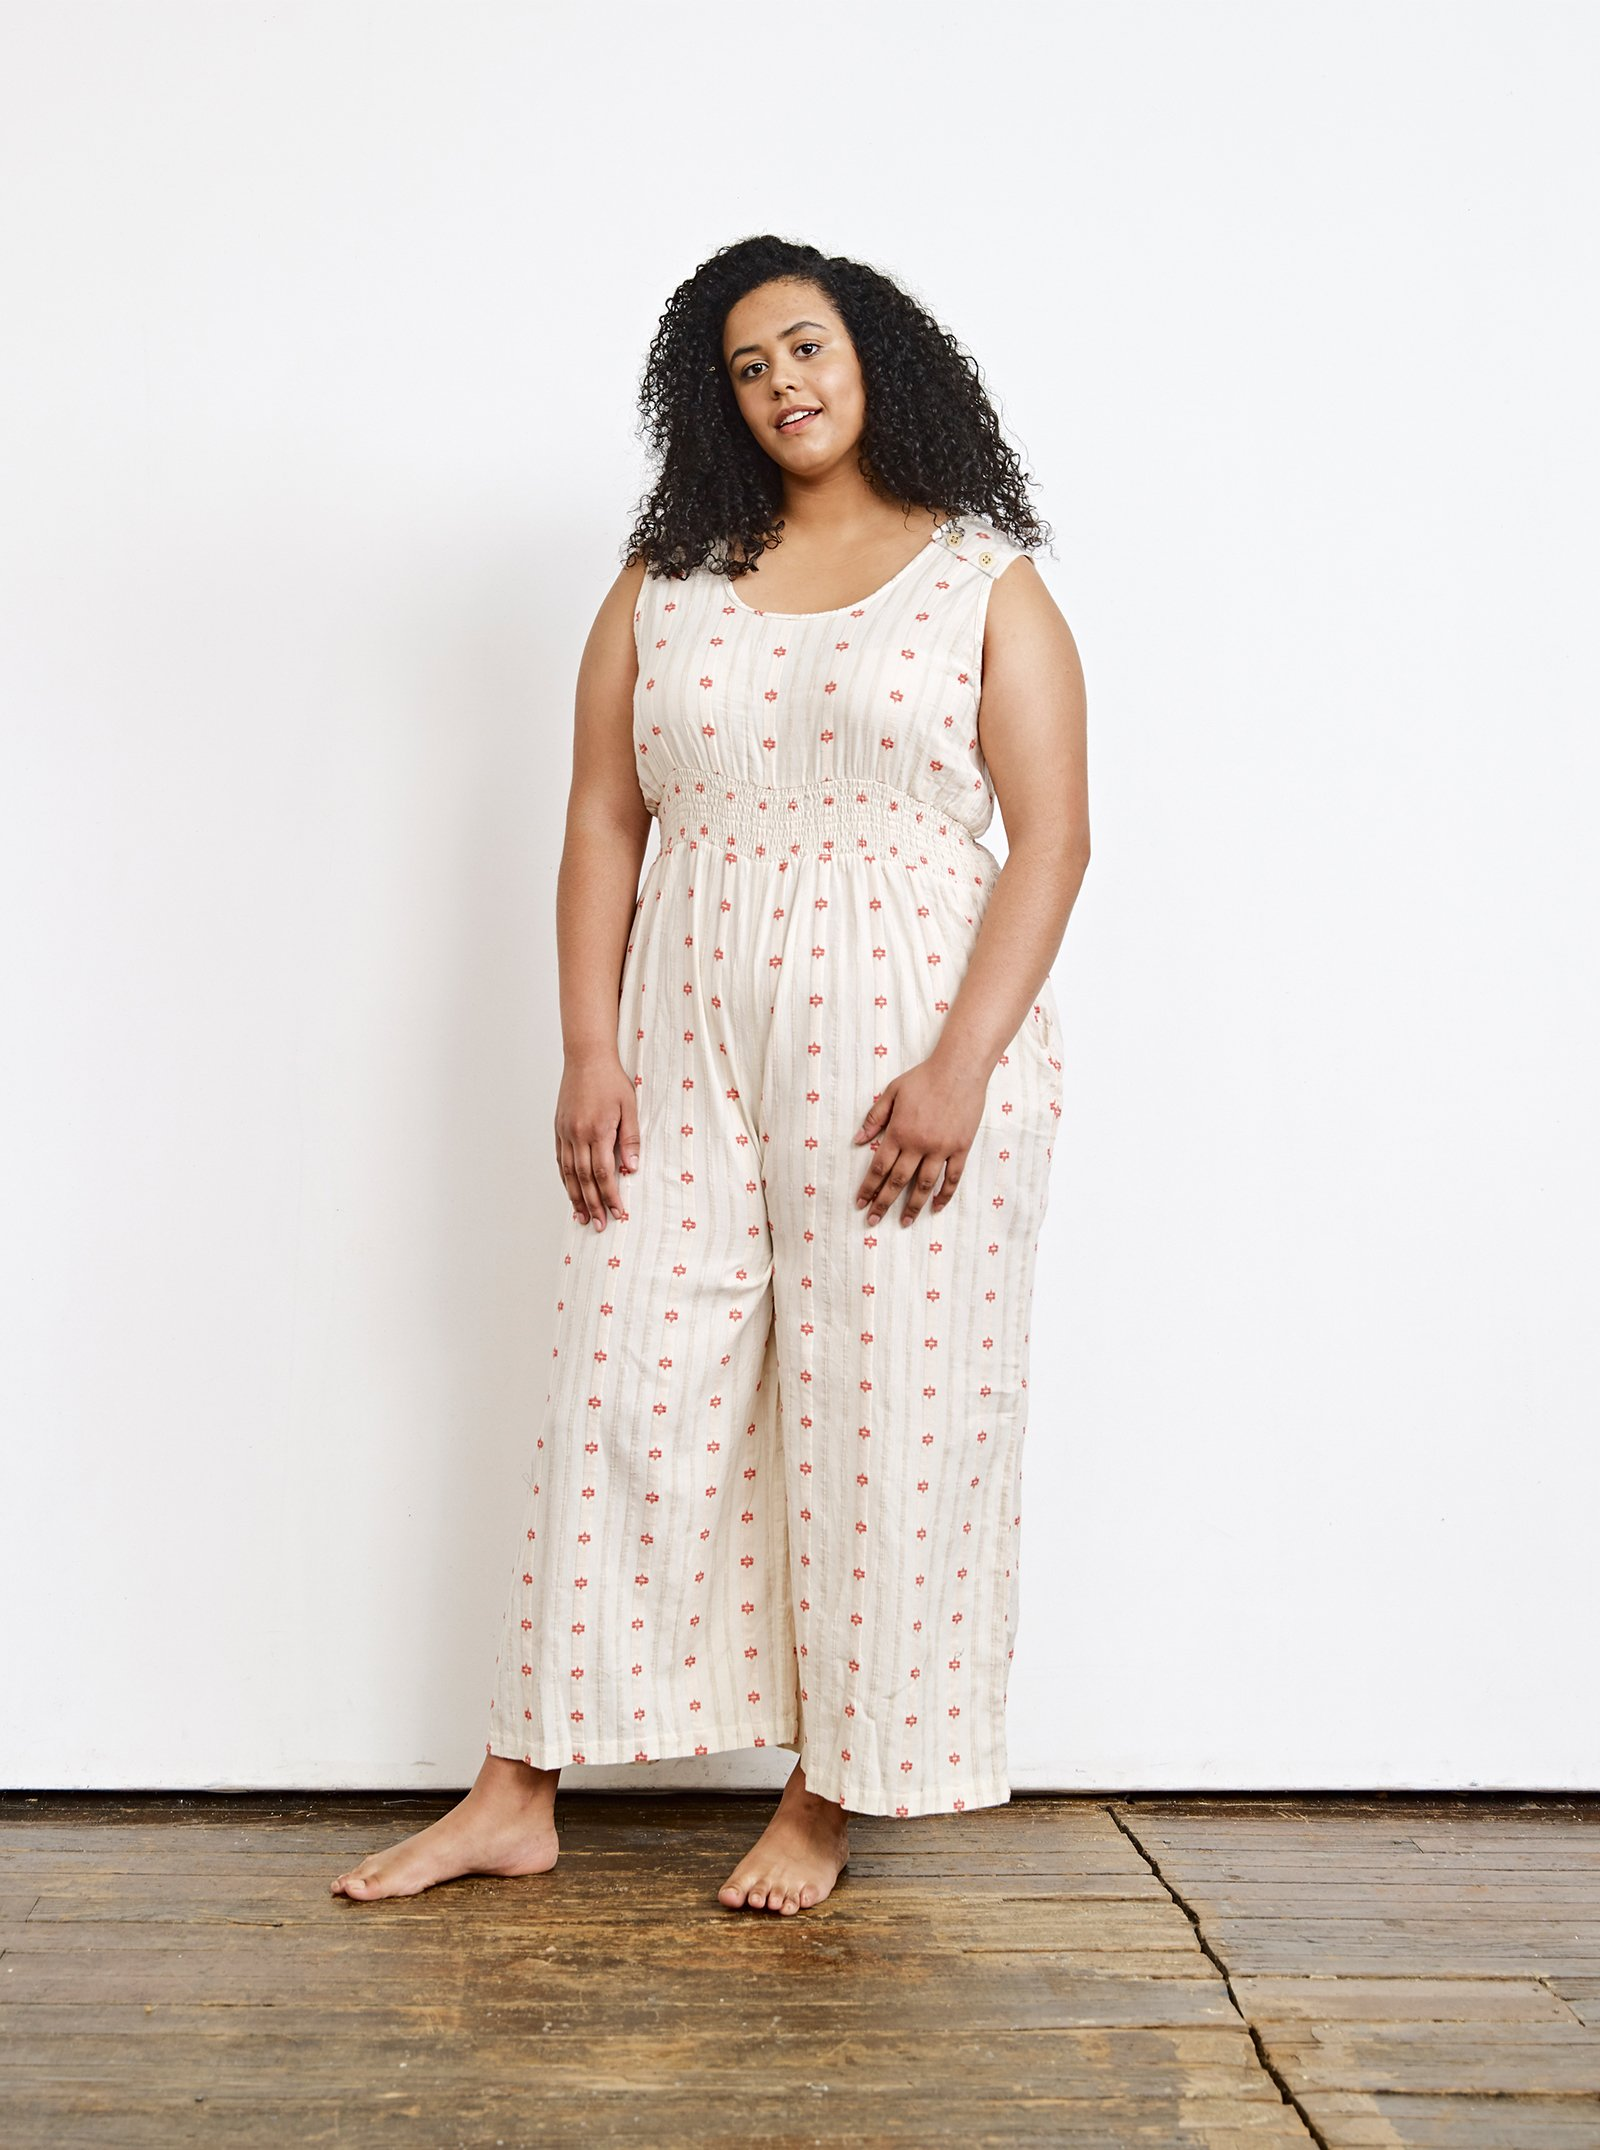 SUSTAINABLE-ETHICAL-FAIR-TRADE-LGBTTQQIAAP-PLUS-SIZE-CLOTHING-BRANDS.PnG